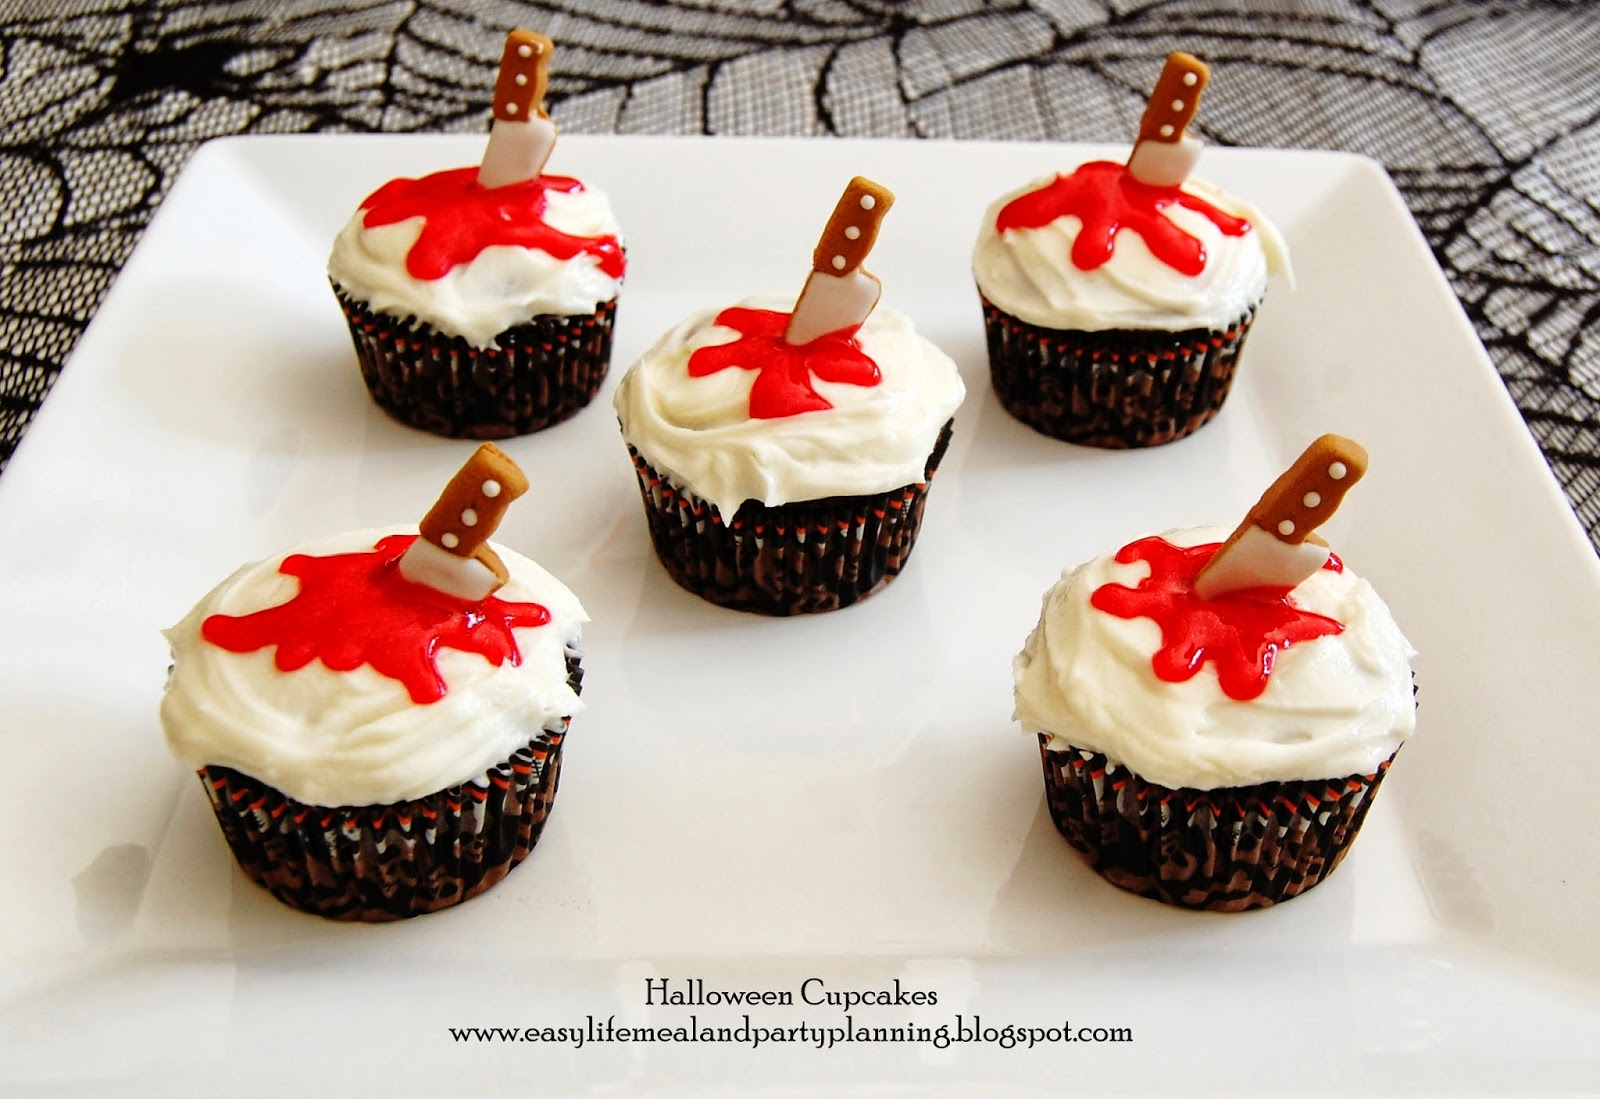 Easy Life Meal and Party Planning: Halloween Cupcake Toppers